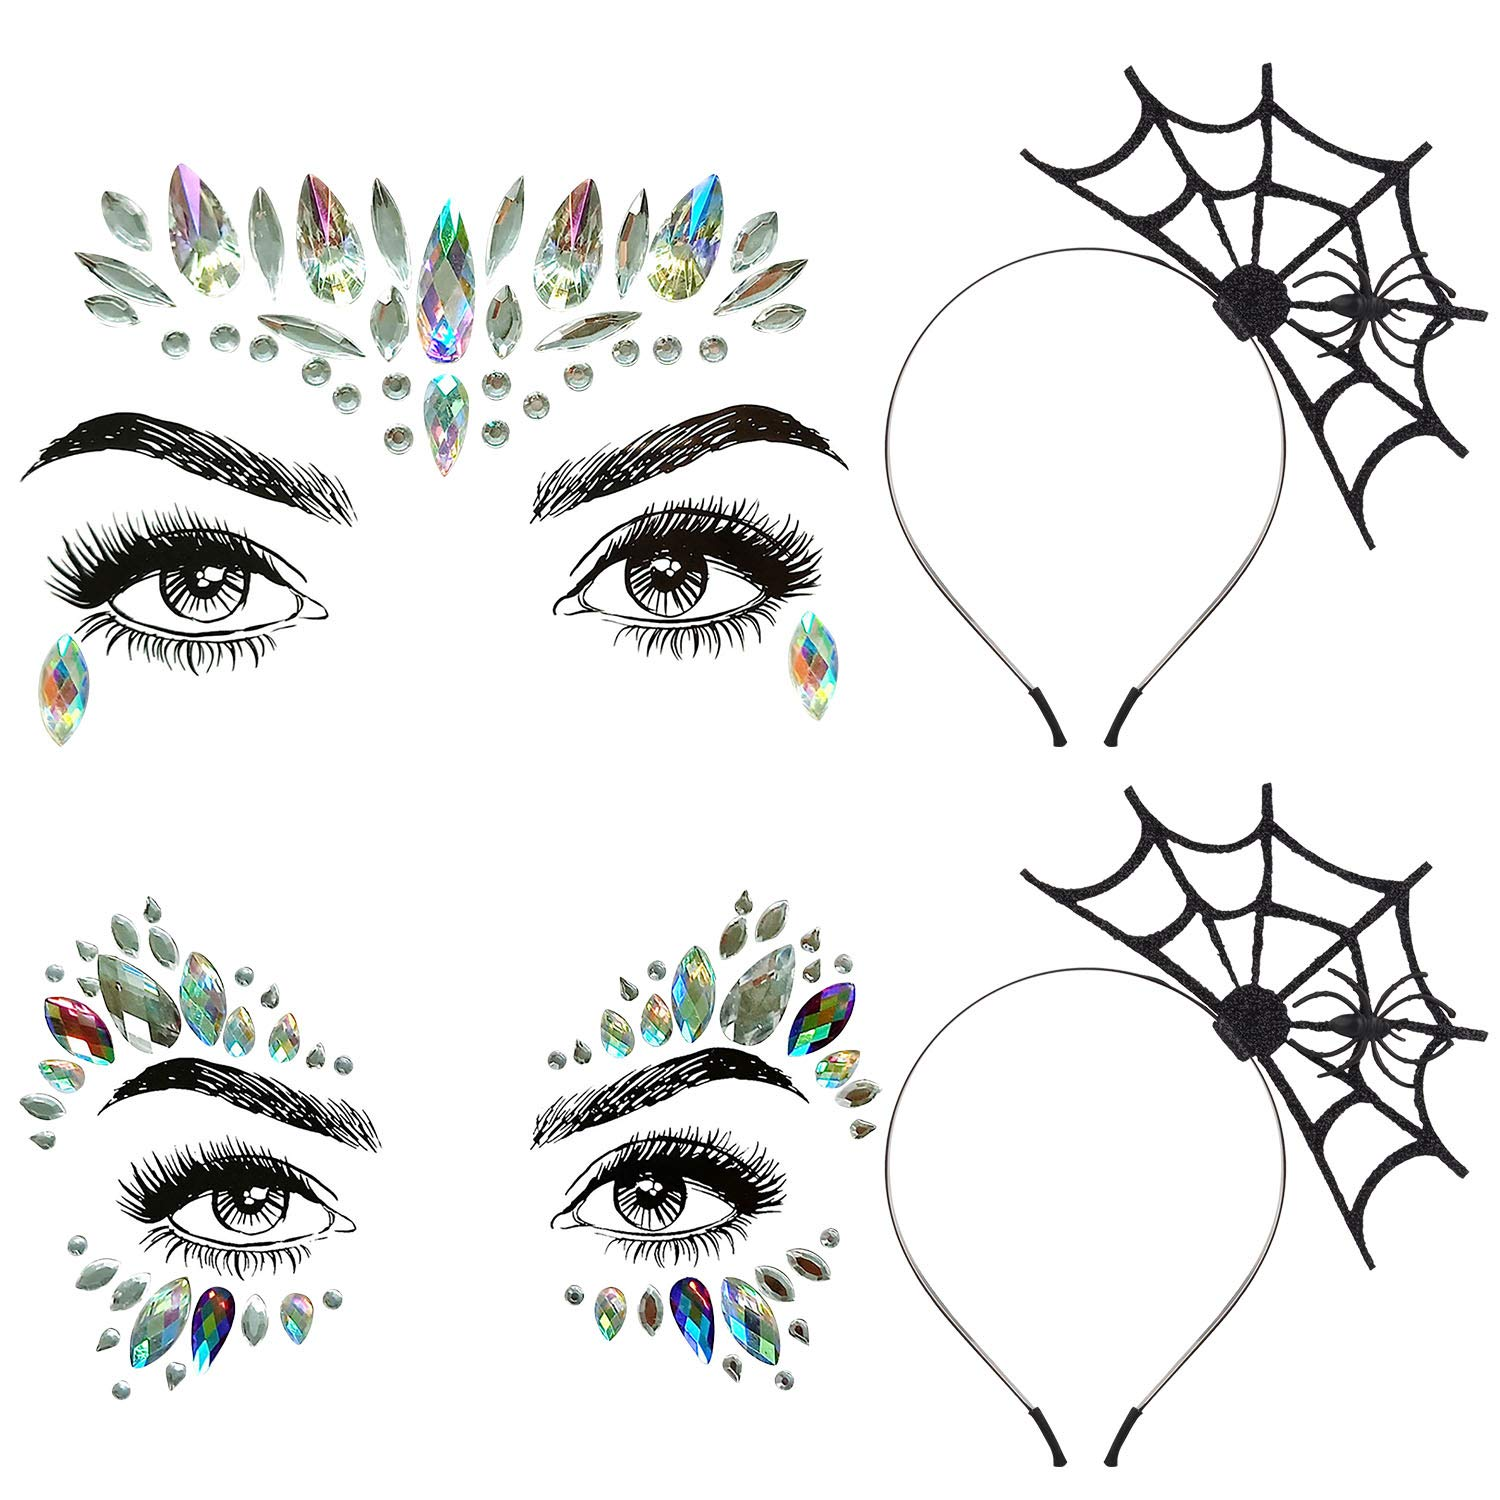 Aniwon 2PCS Halloween Spider Web Headband+2 PCS Rhinestone Face Jewels, Spider Headband Halloween Party Headband Hair Hoop with Mermaid Face Gems Glitter for Women Halloween Cosplay Party Costume